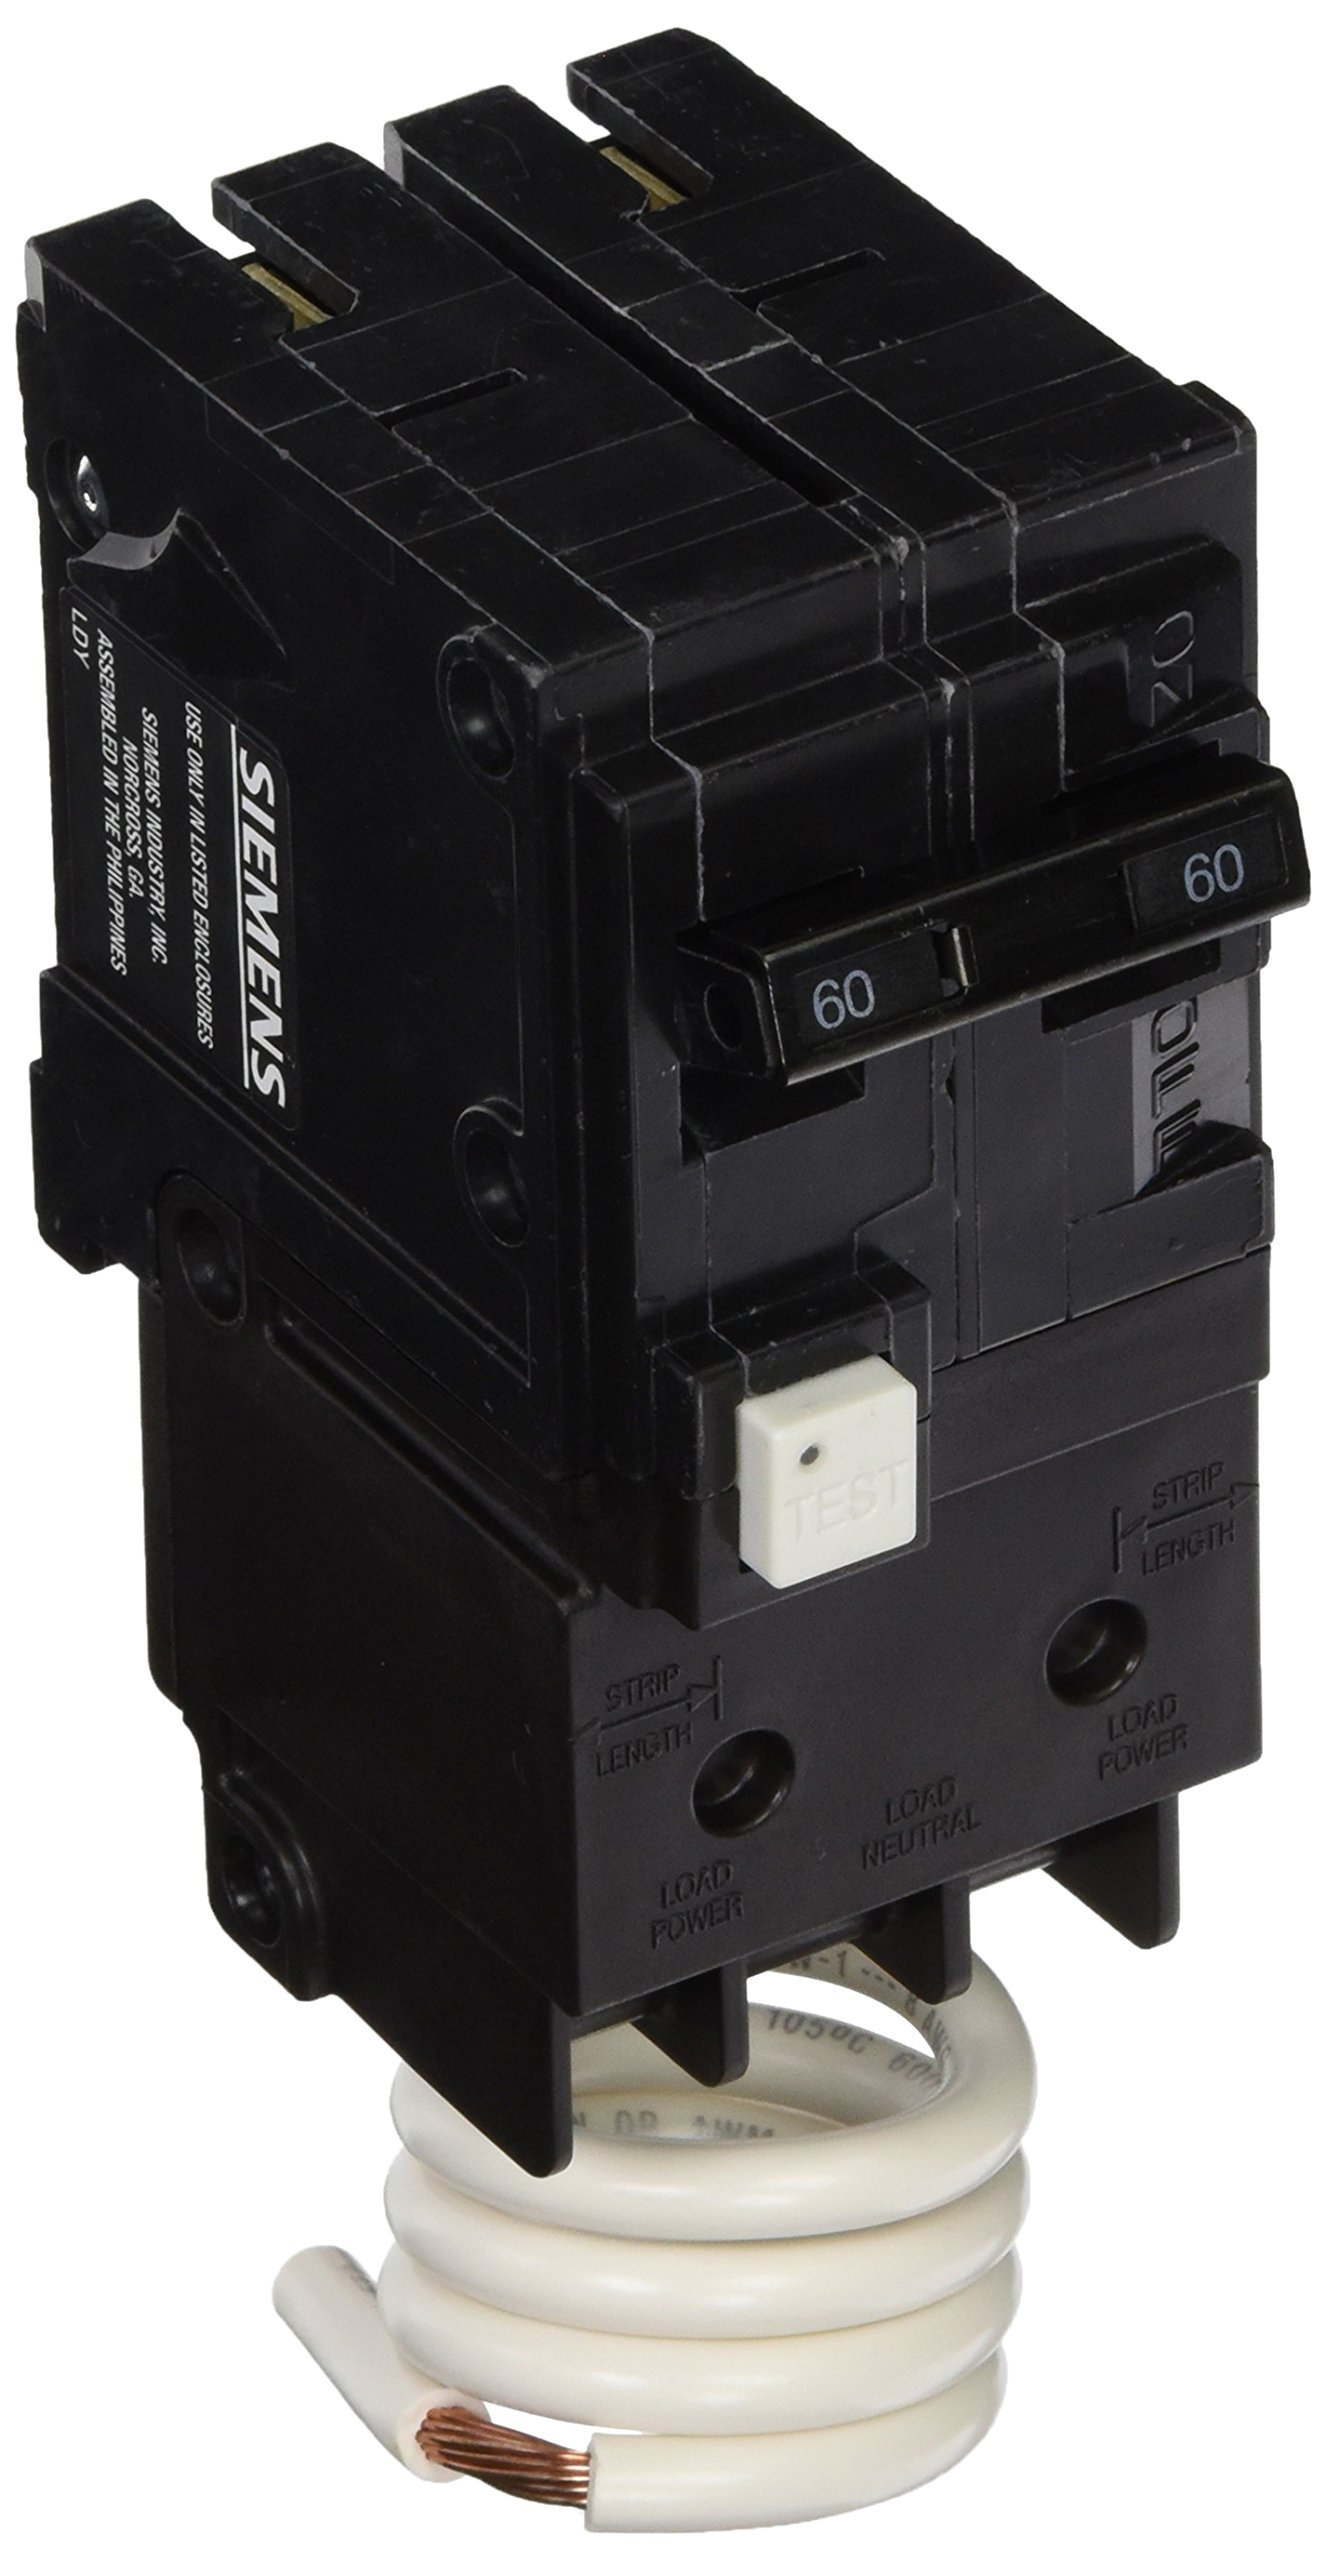 Siemens QF260A 60 Amp, 2 Pole, 120/240V Ground Fault Circuit Interrupter with Self Test and Lockout Feature